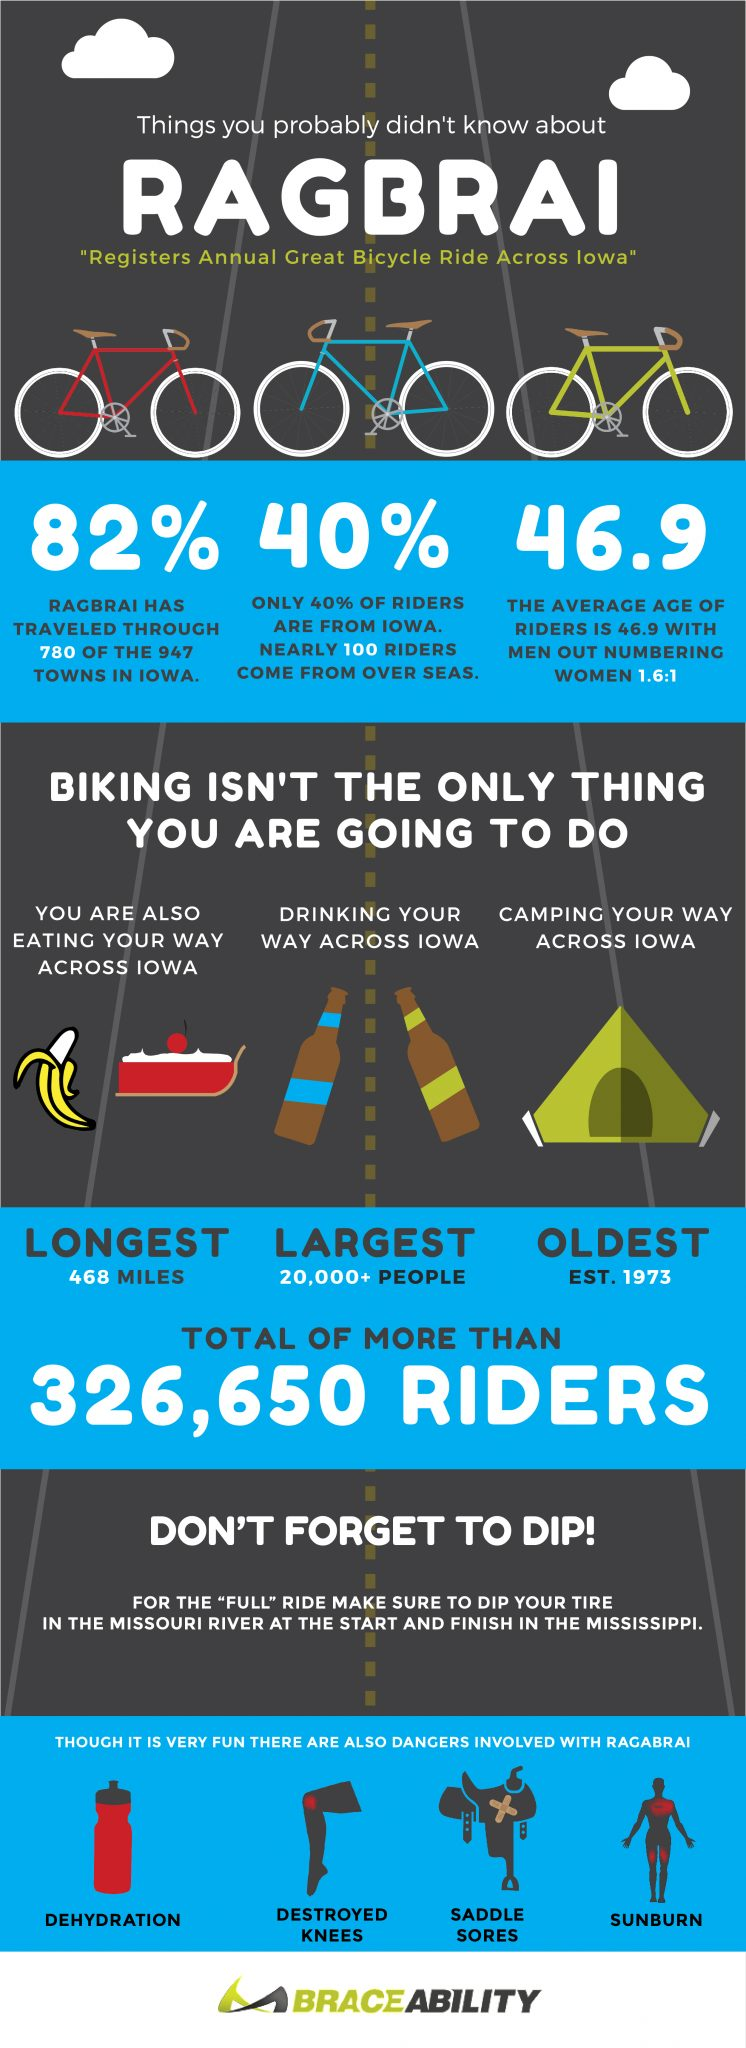 ten things you didn't know about RAGBRAI infographic and what to expect on the ride